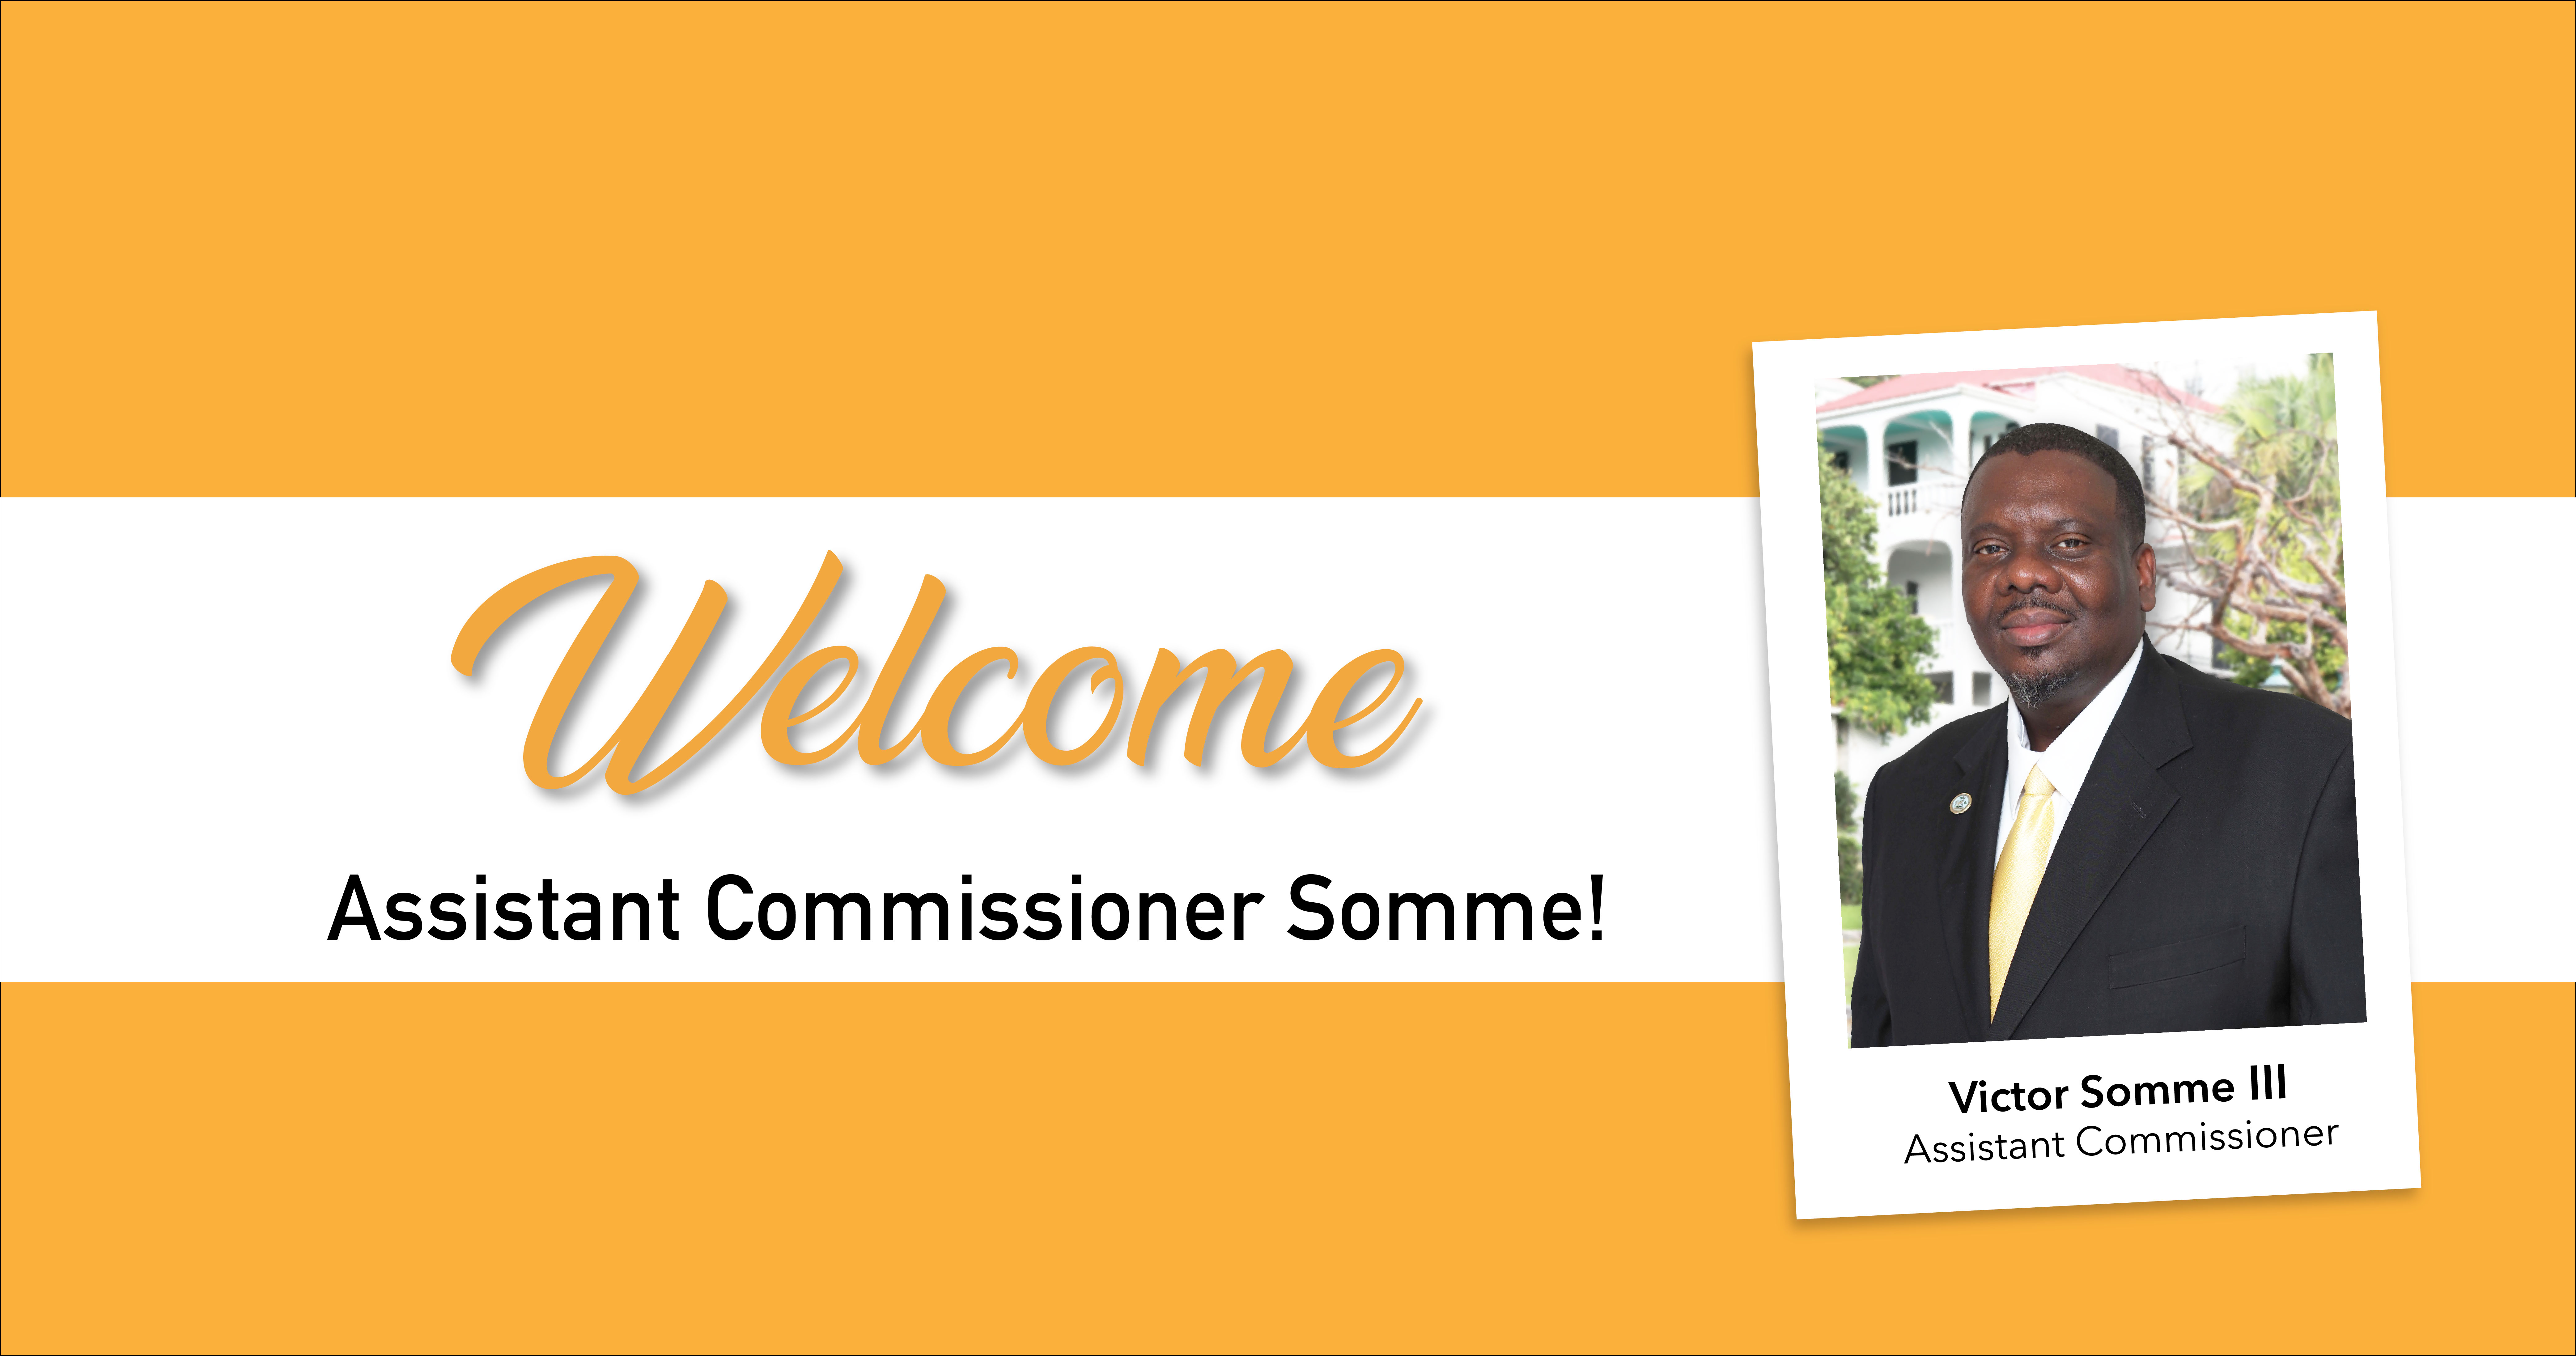 Congratulations, Assistant Commissioner Somme!